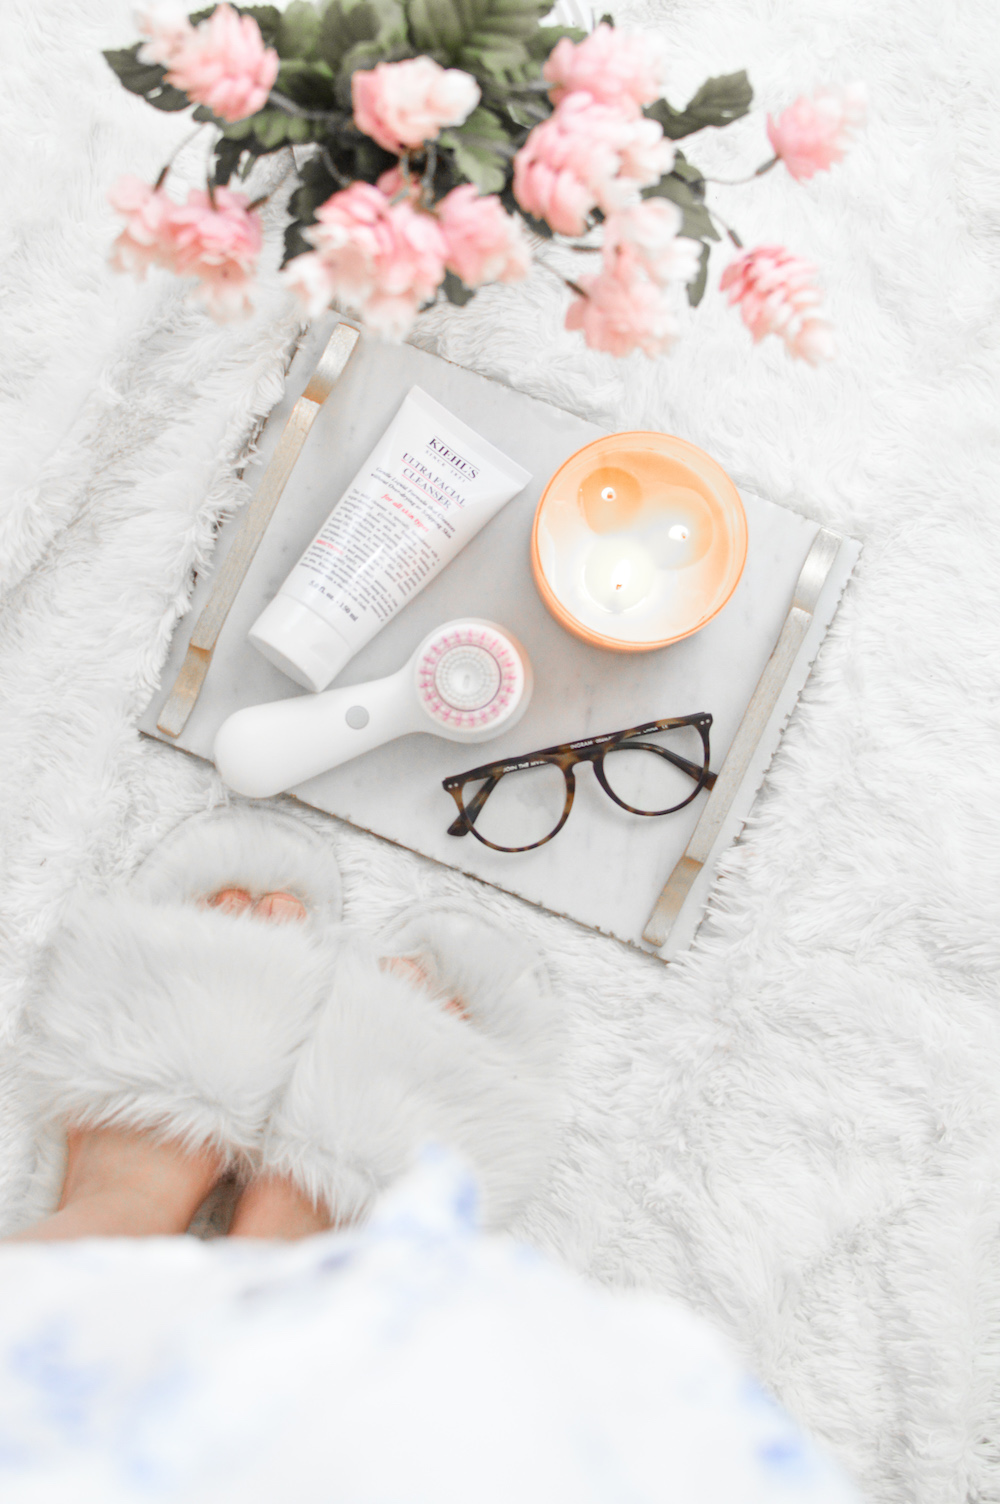 Best Deep Cleansing Tool | Best Skincare Tools | Clarisonic Review